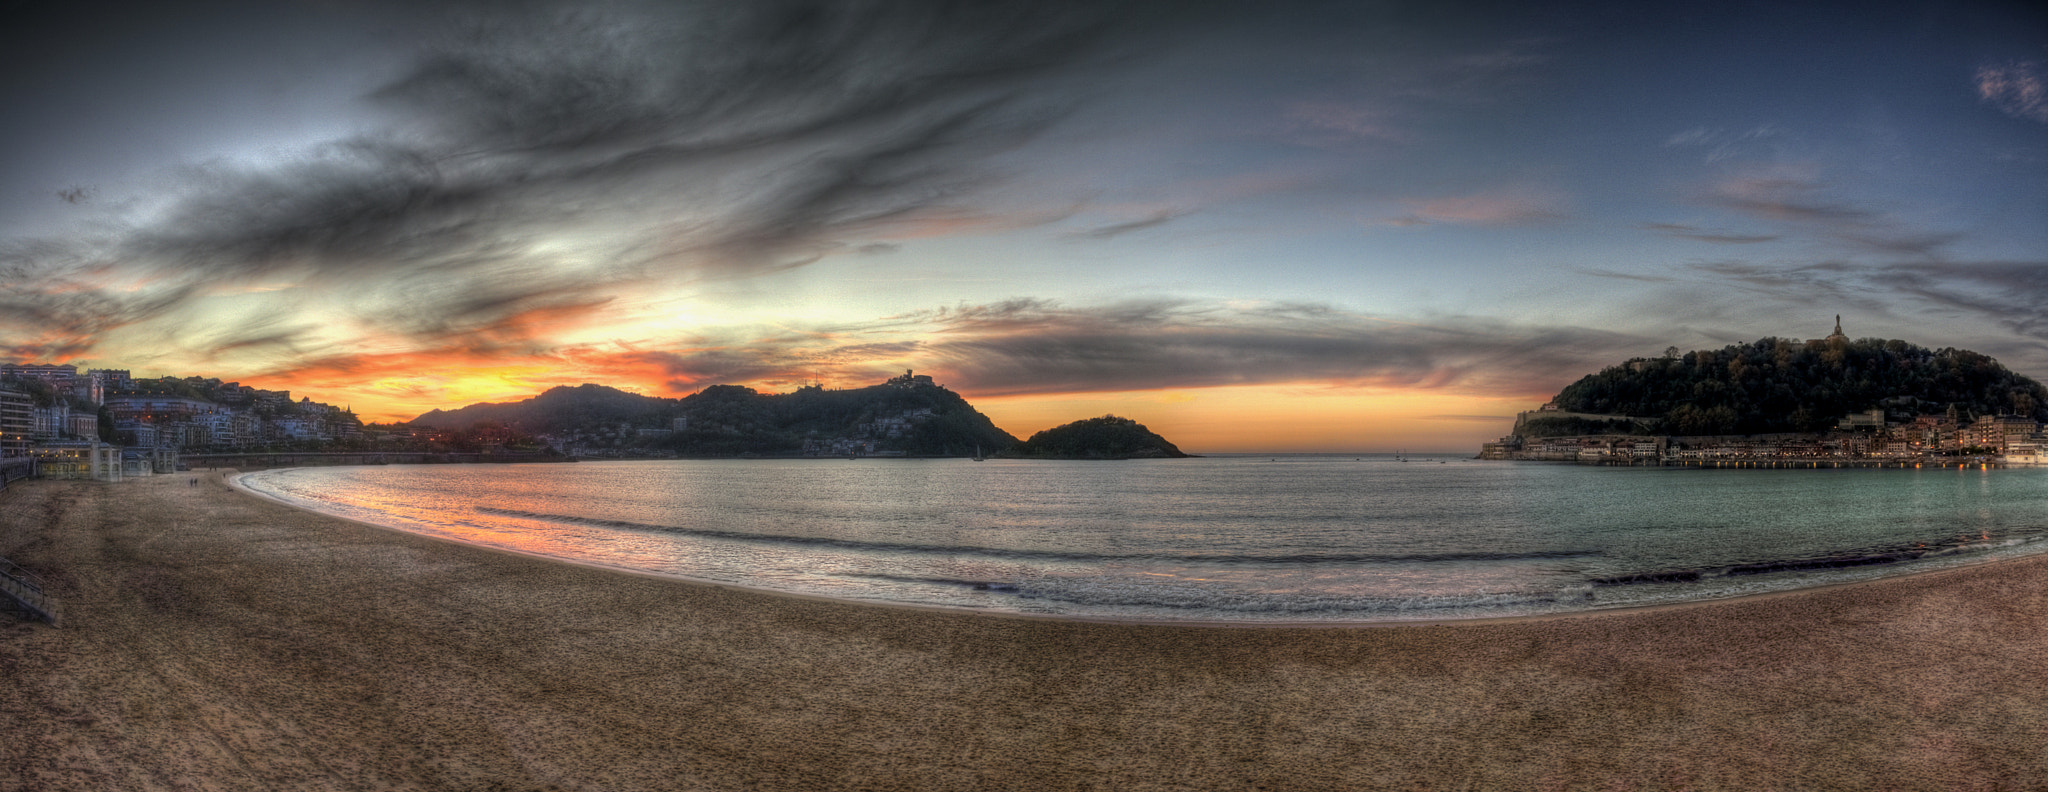 Photograph Basque sunset by Javier Perez on 500px